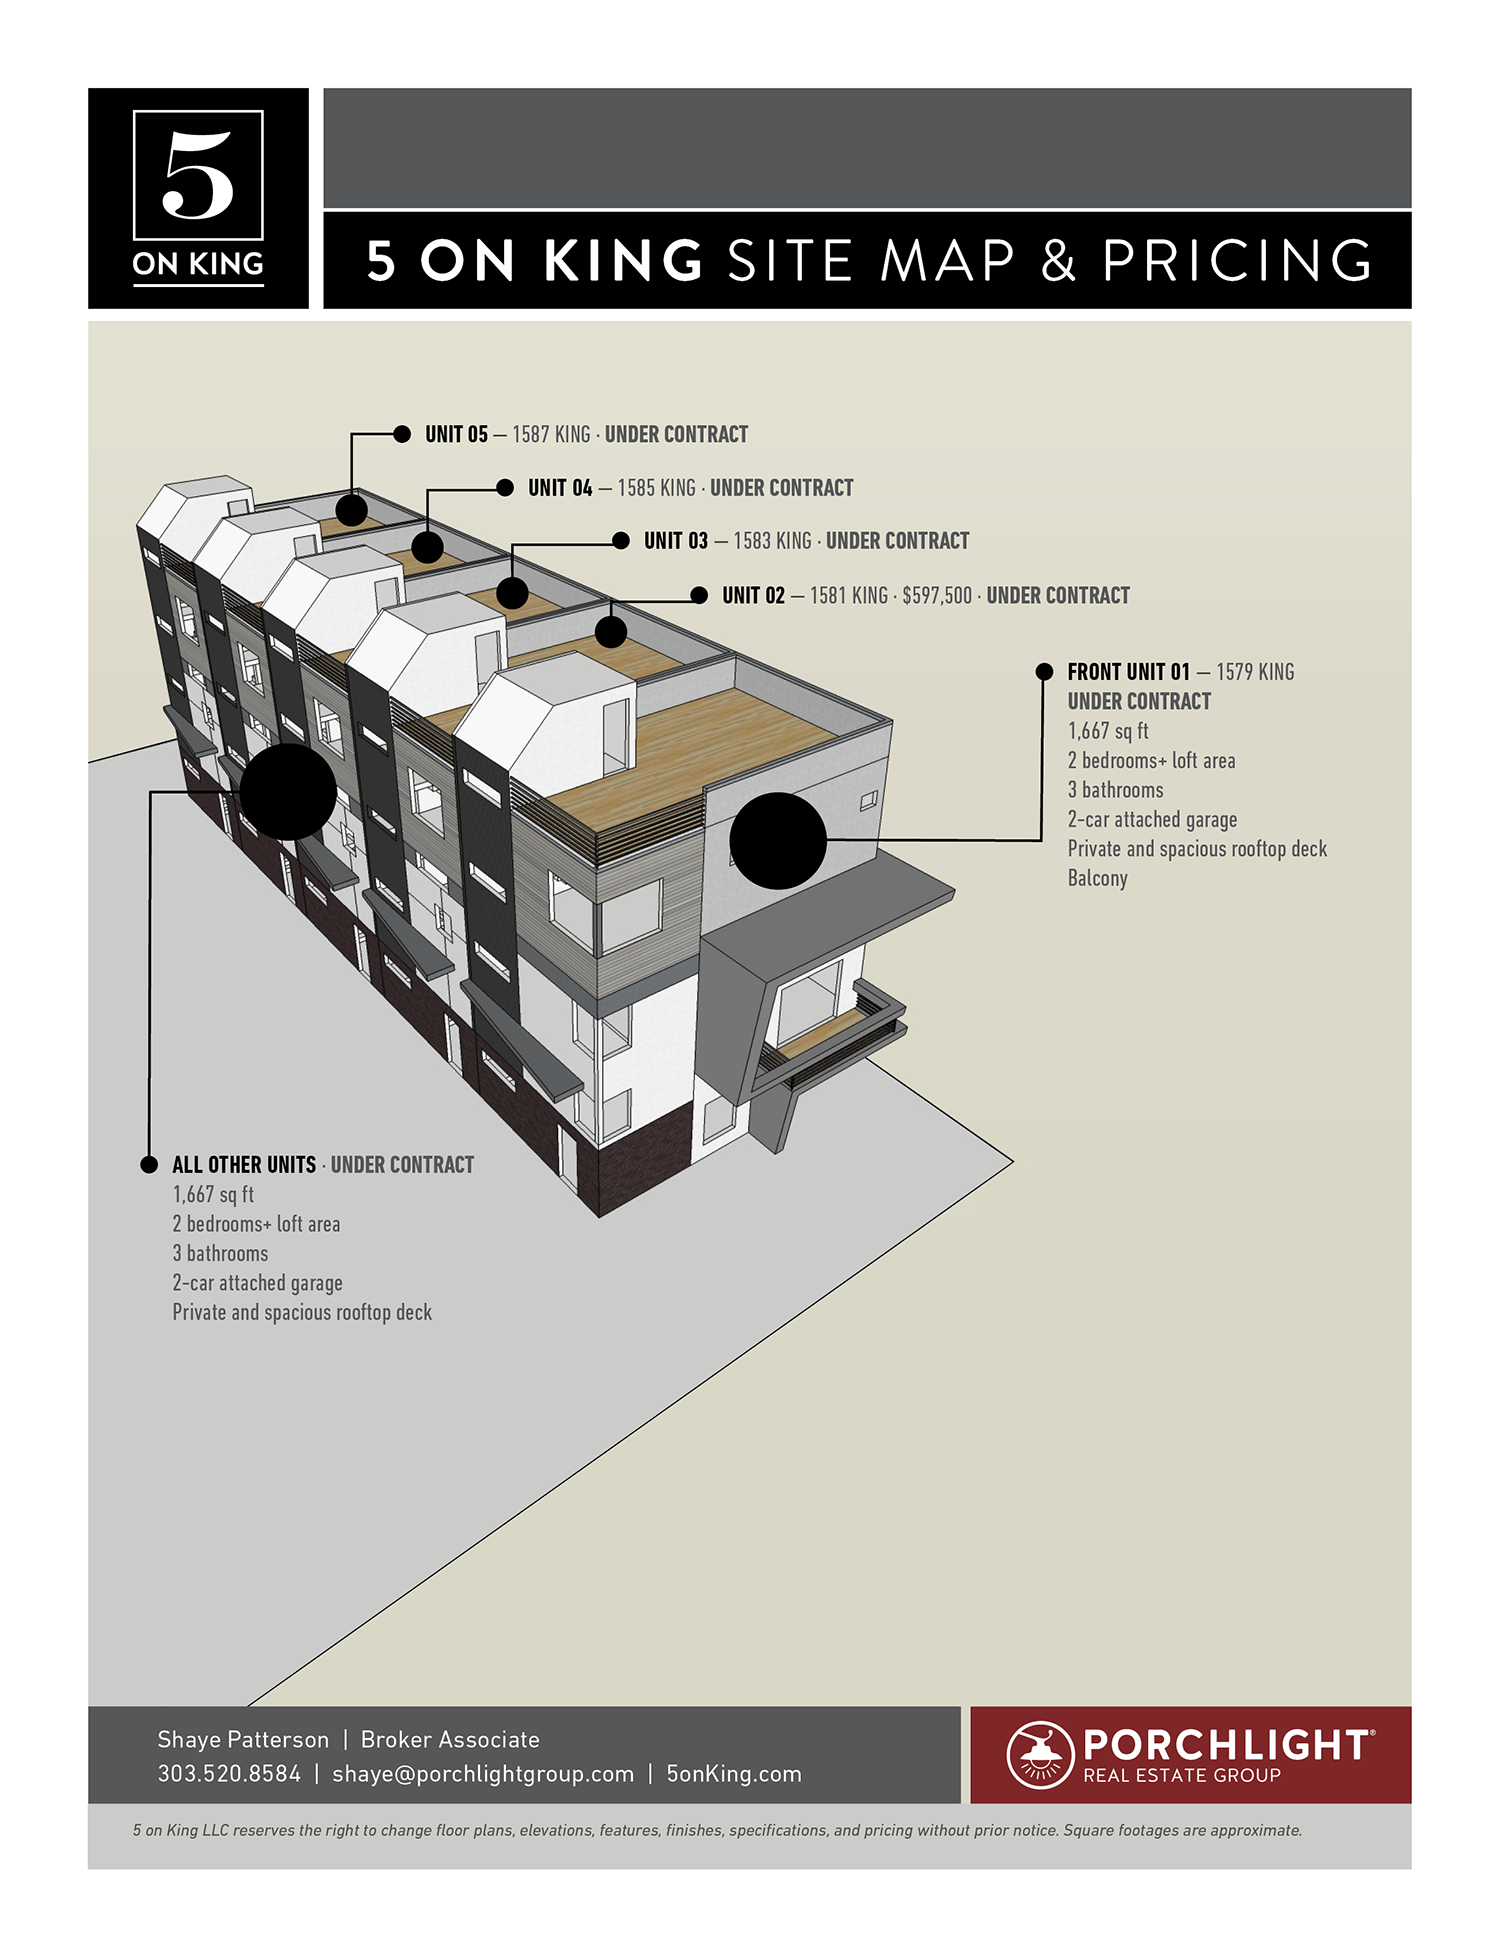 5onKing_SiteMap.png